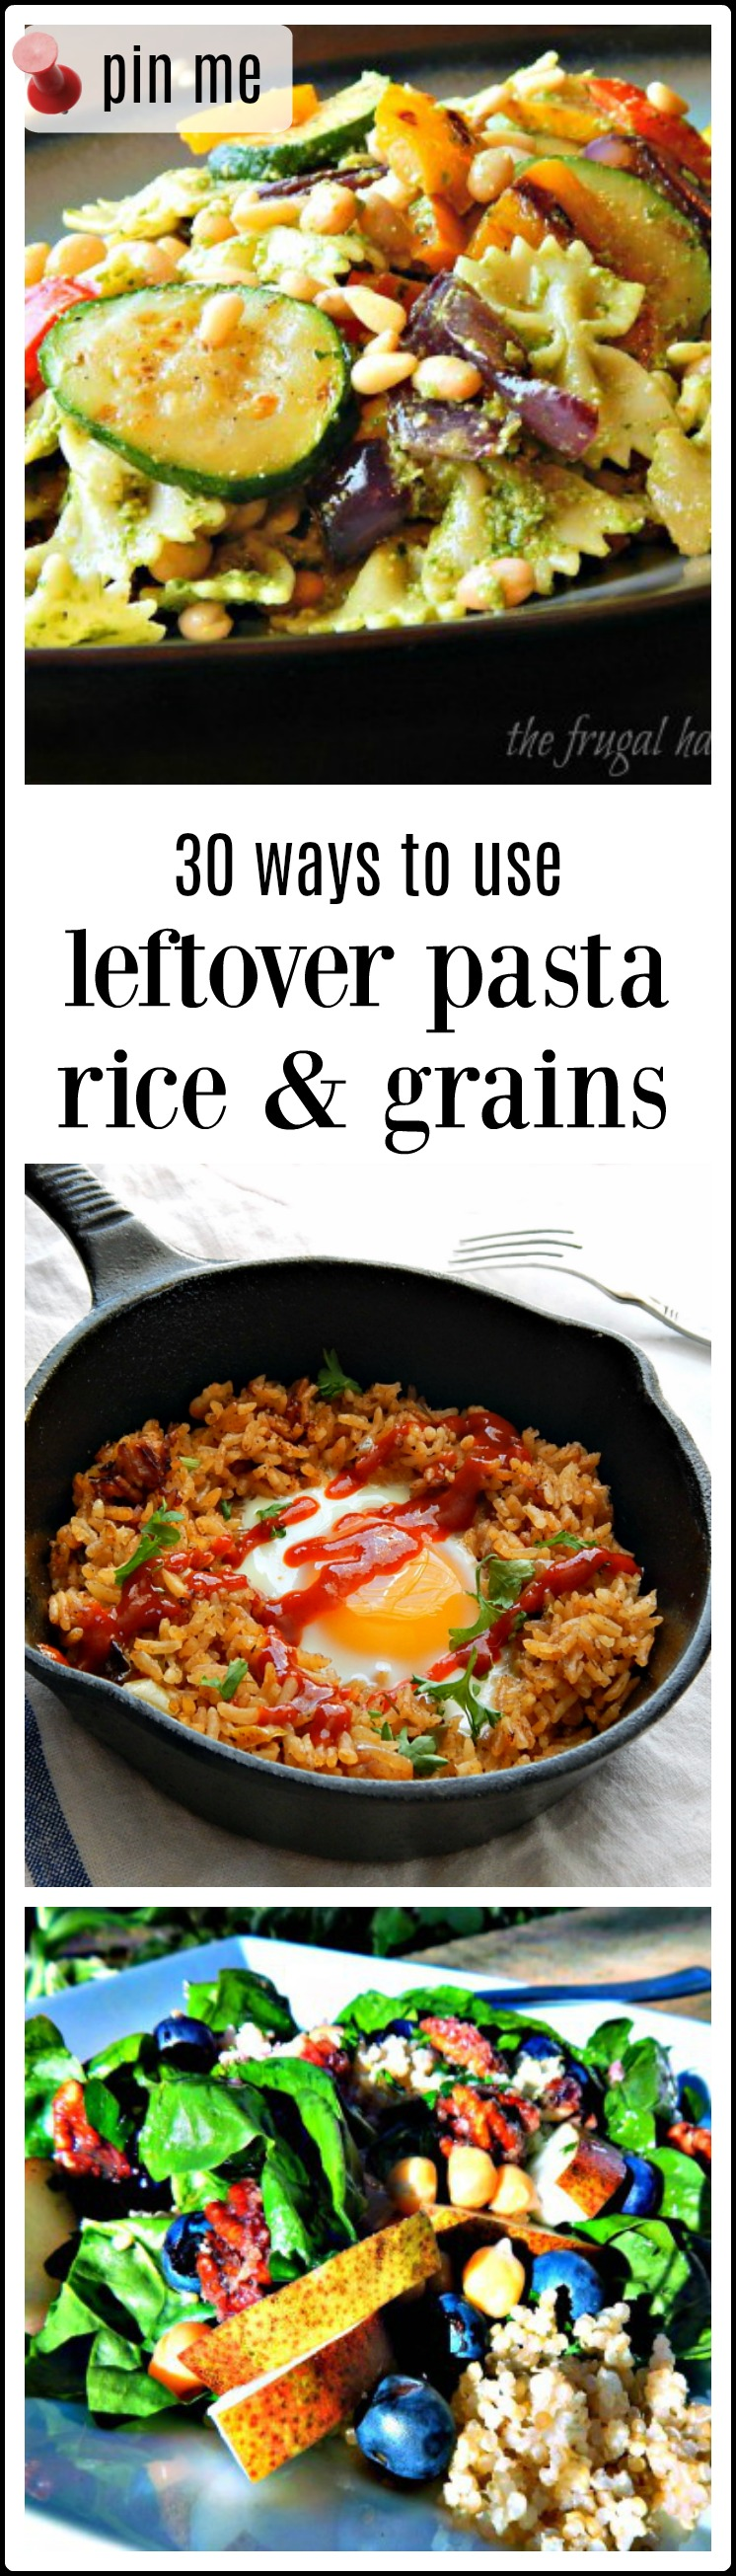 30 ways to use leftover pasta, rice and grains - you'll find some inspiration here! Don't let a bit of this or that languish in the fridge! #leftover pasta #leftover Rice #leftover grains #leftovers